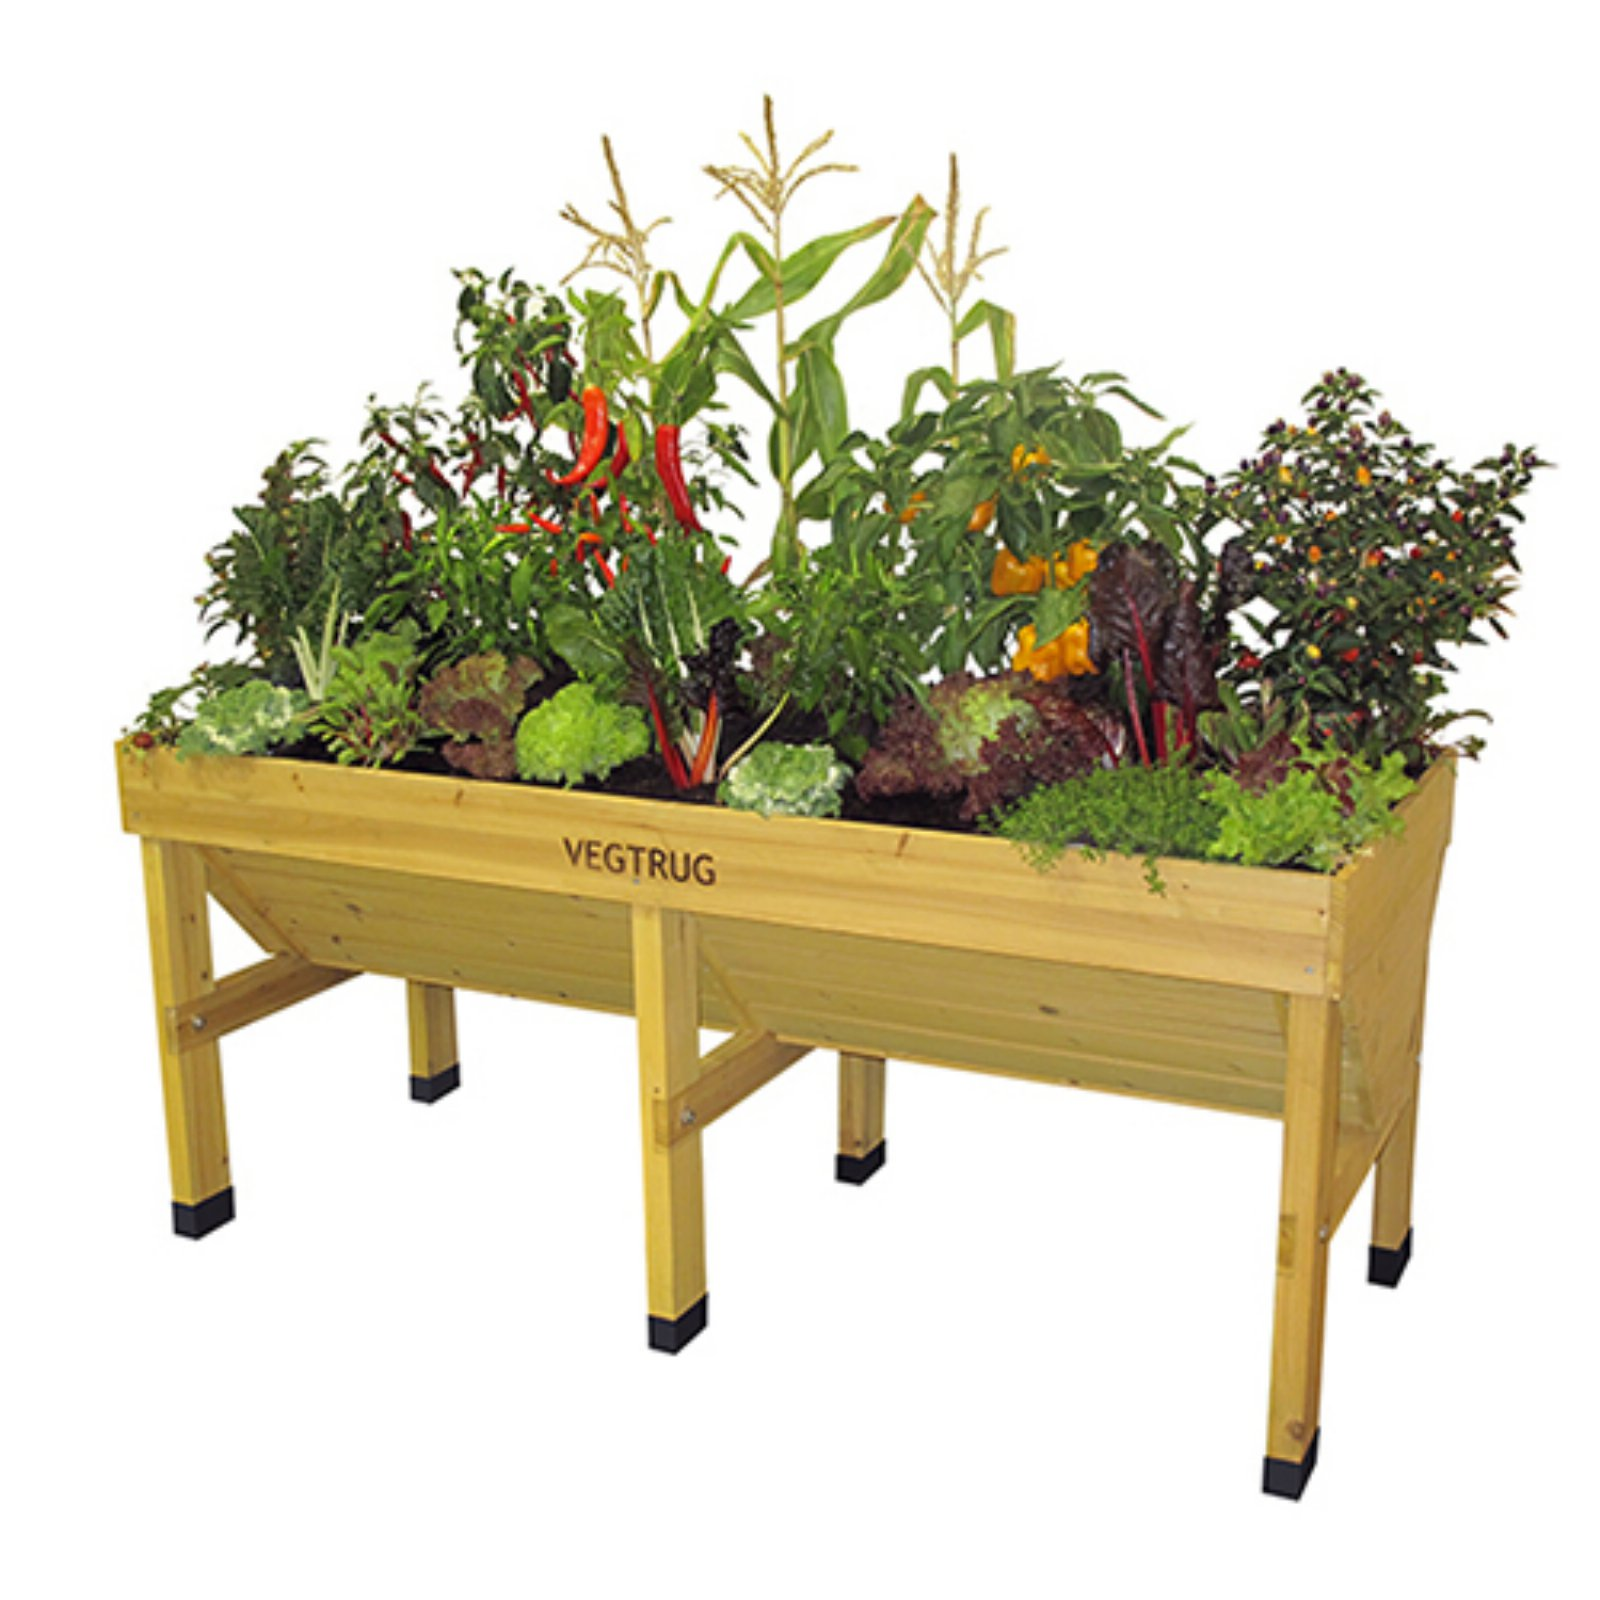 VegTrug Elevated Planter Bed